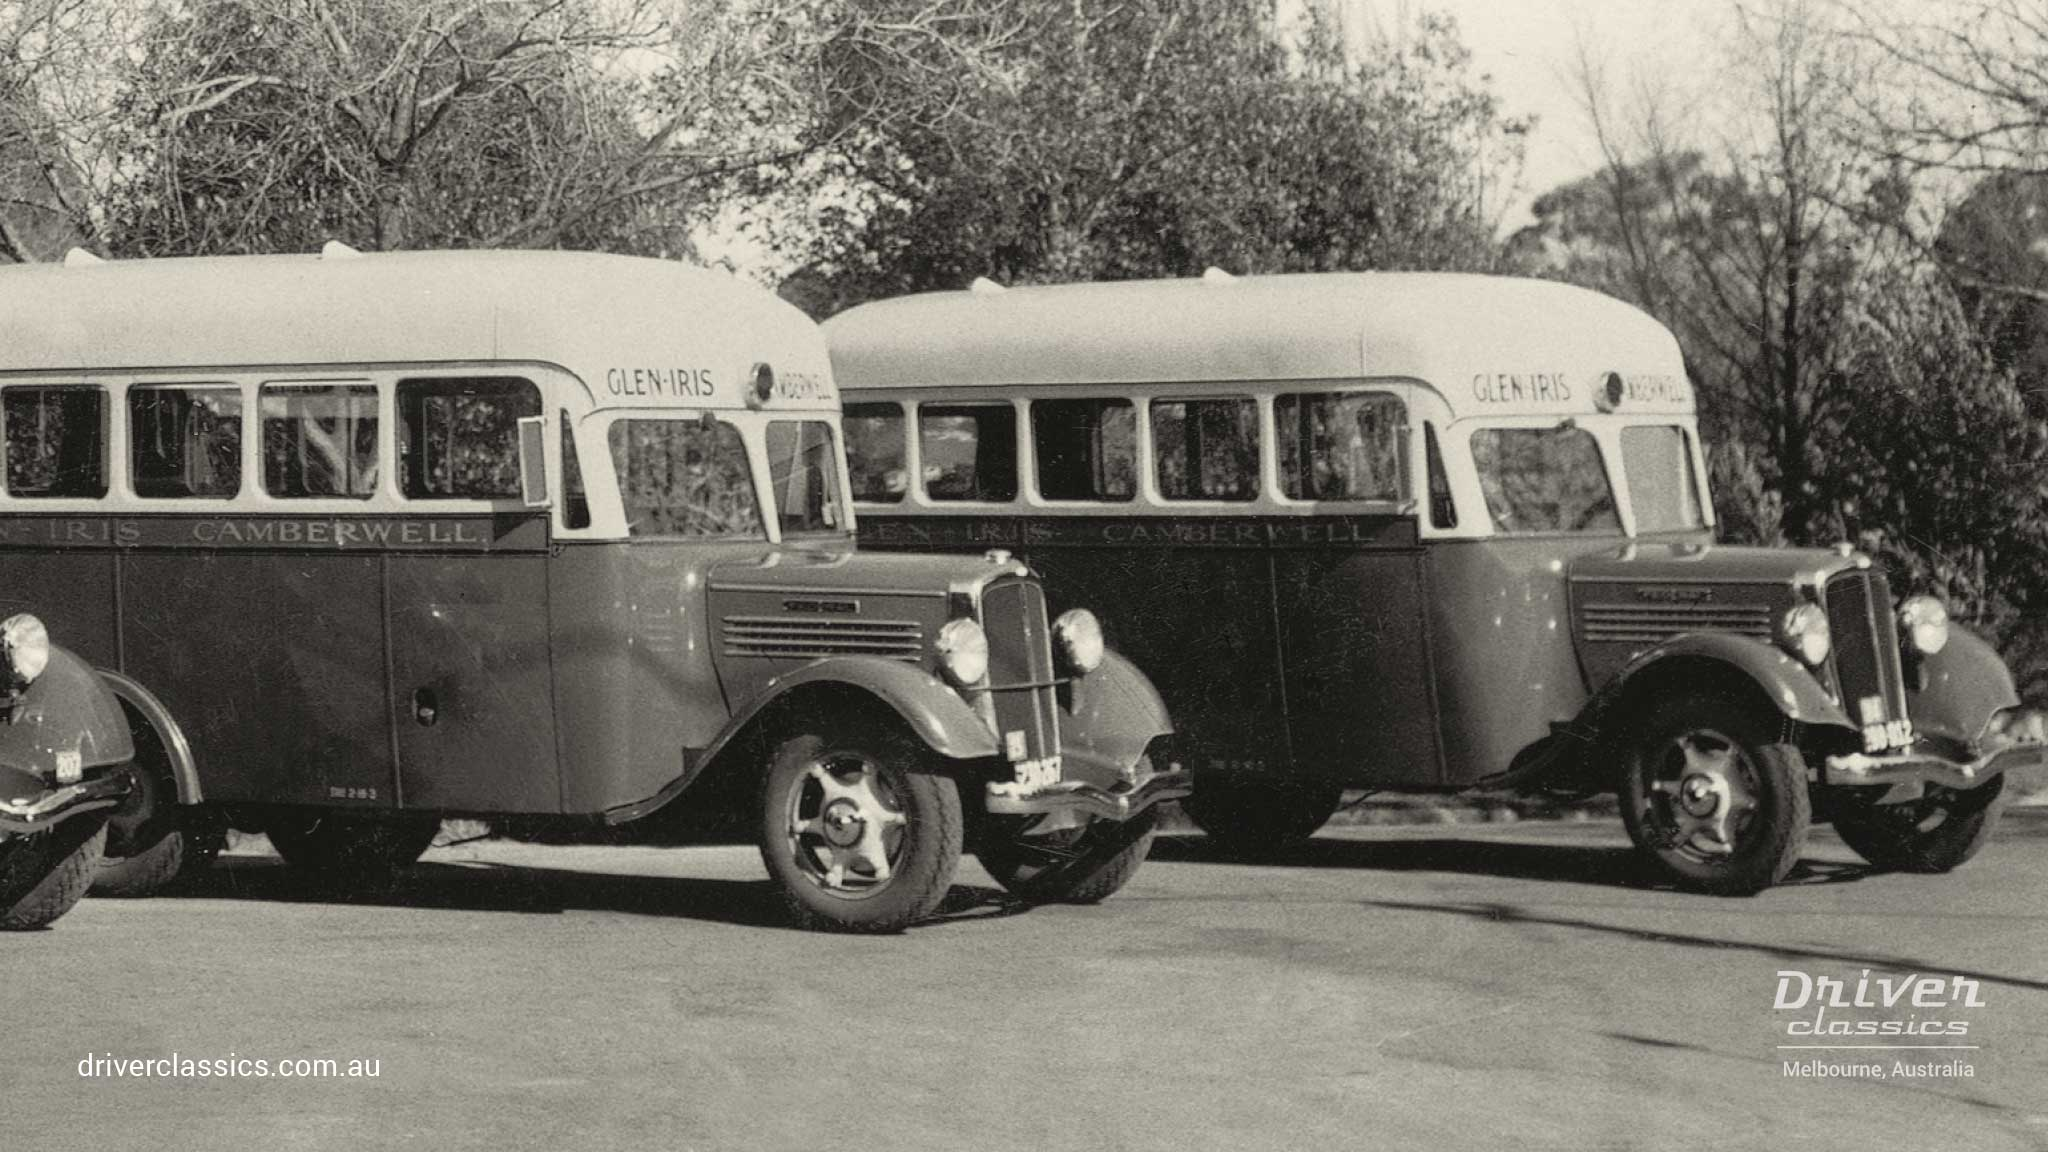 Federal Buses, each with Grummet 12 passenger body, photo taken 1937